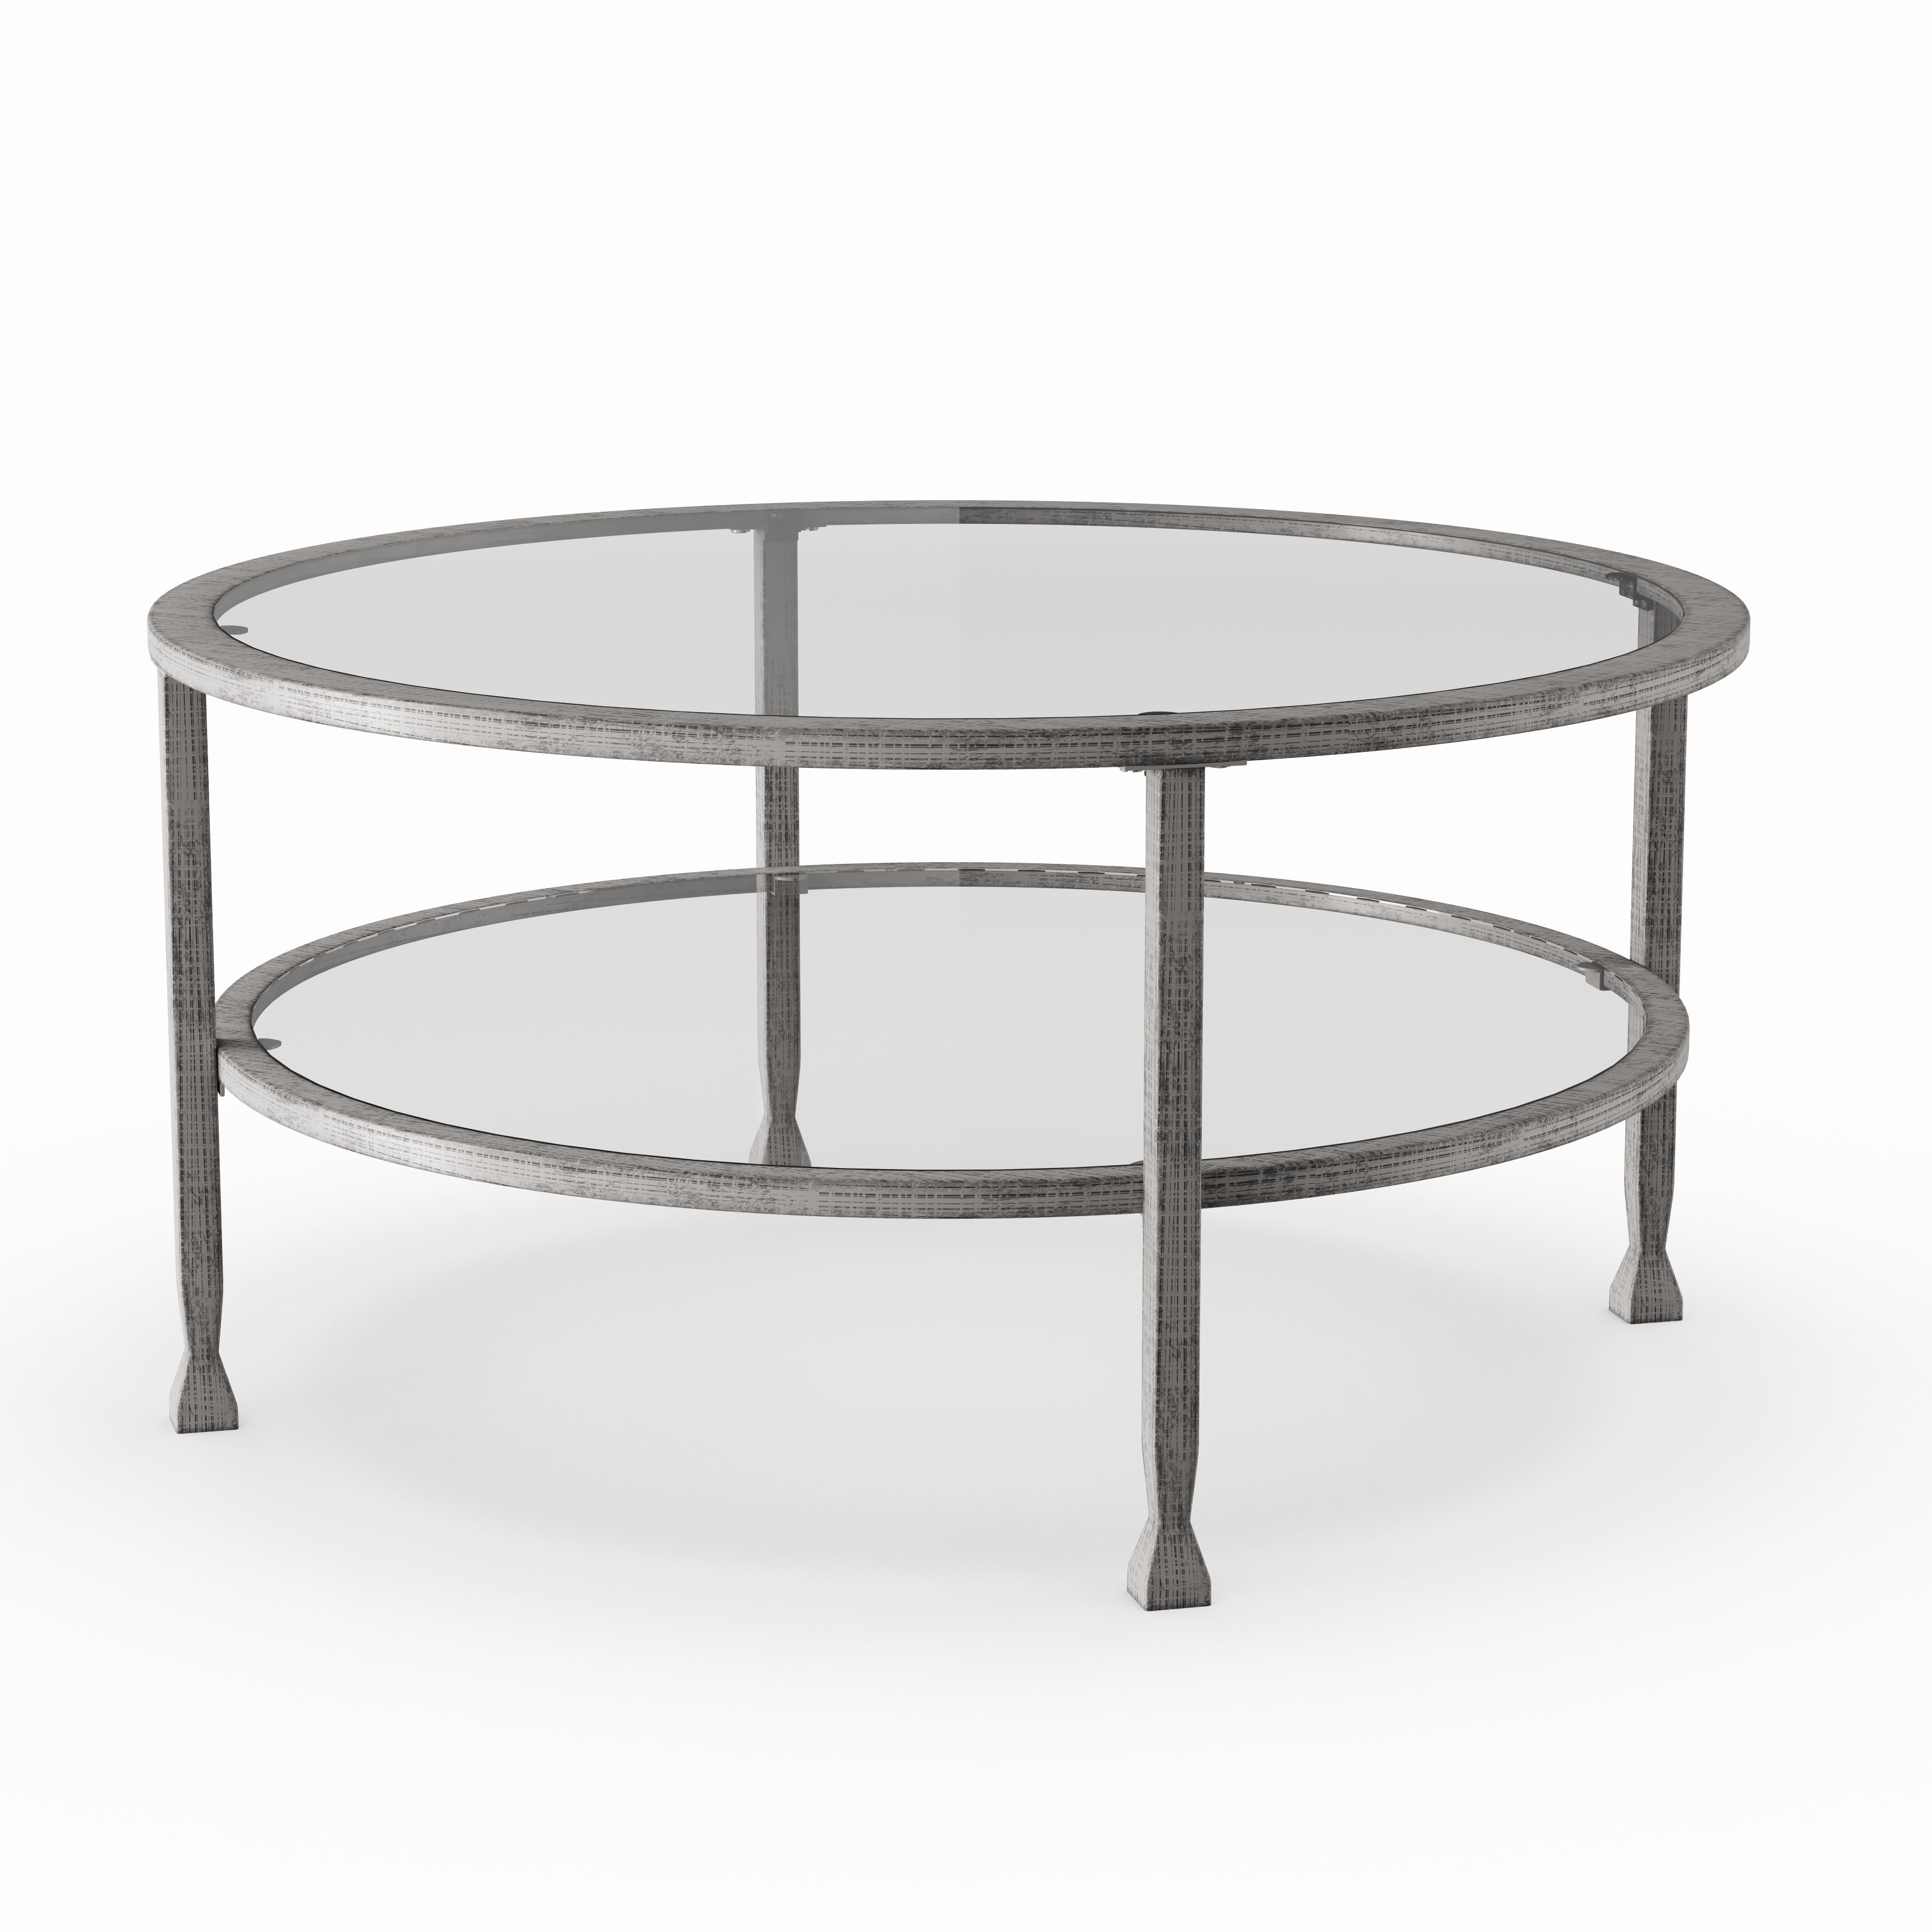 Recent Carbon Loft Heimlich Pewter Steel/glass Round Coffee Tables Intended For Carbon Loft Glenn Silver Metal/ Glass Round Cocktail Table (View 16 of 20)